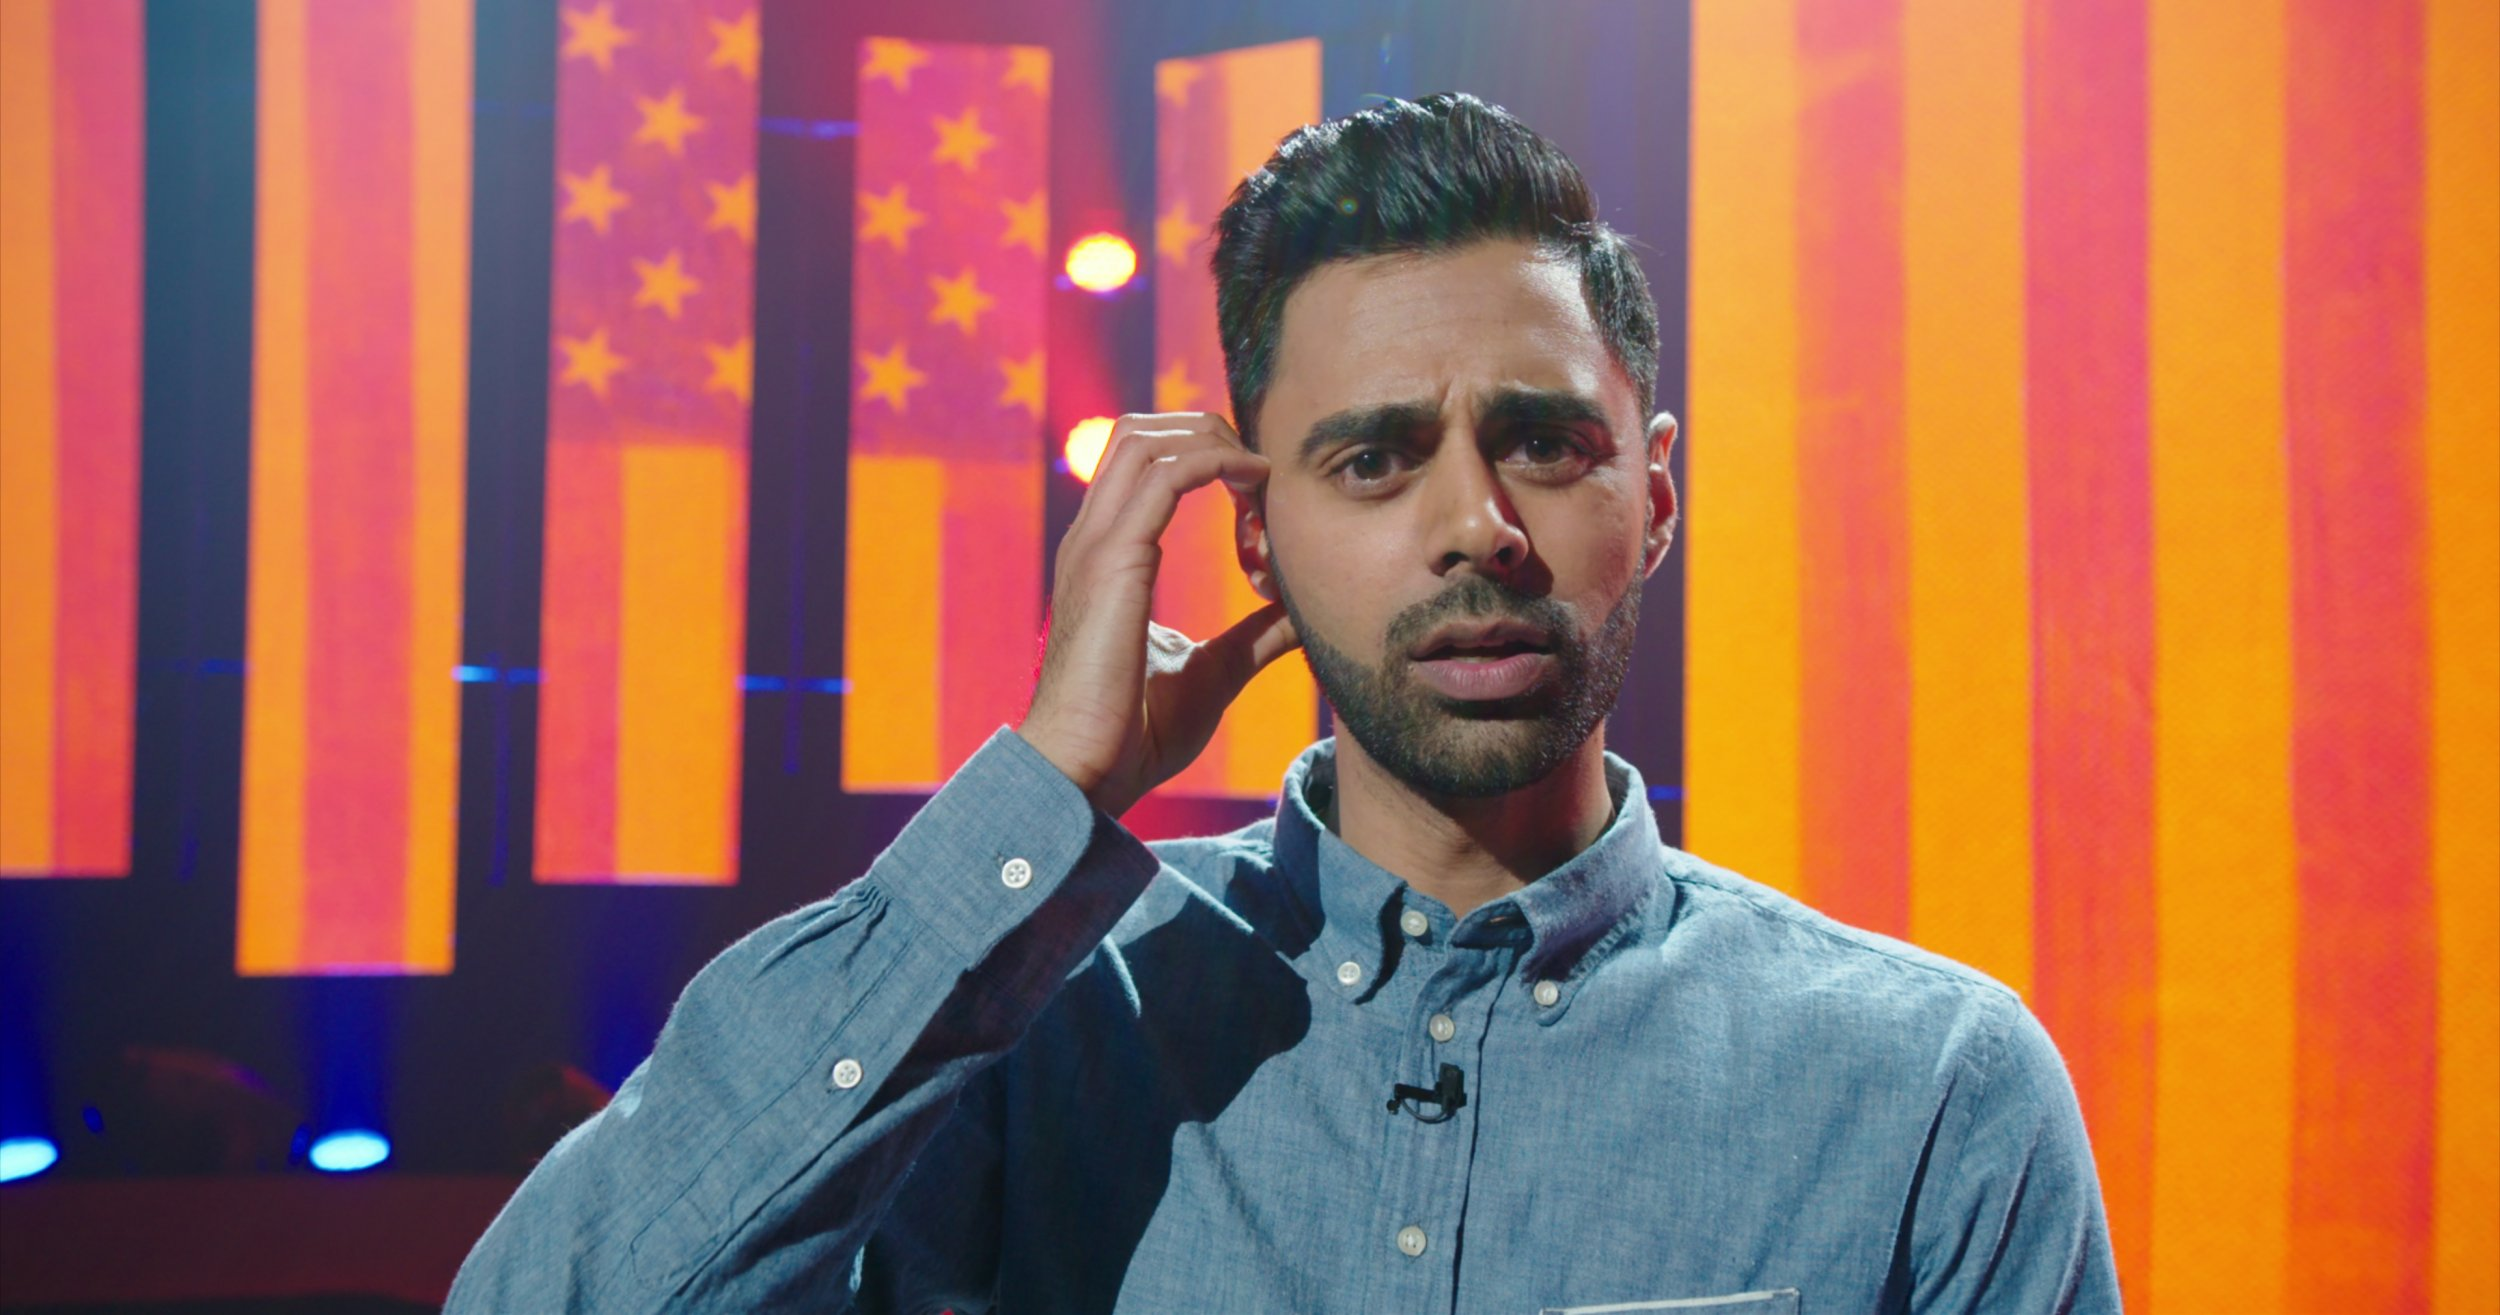 5-23-17 Hasan Minhaj Homecoming King